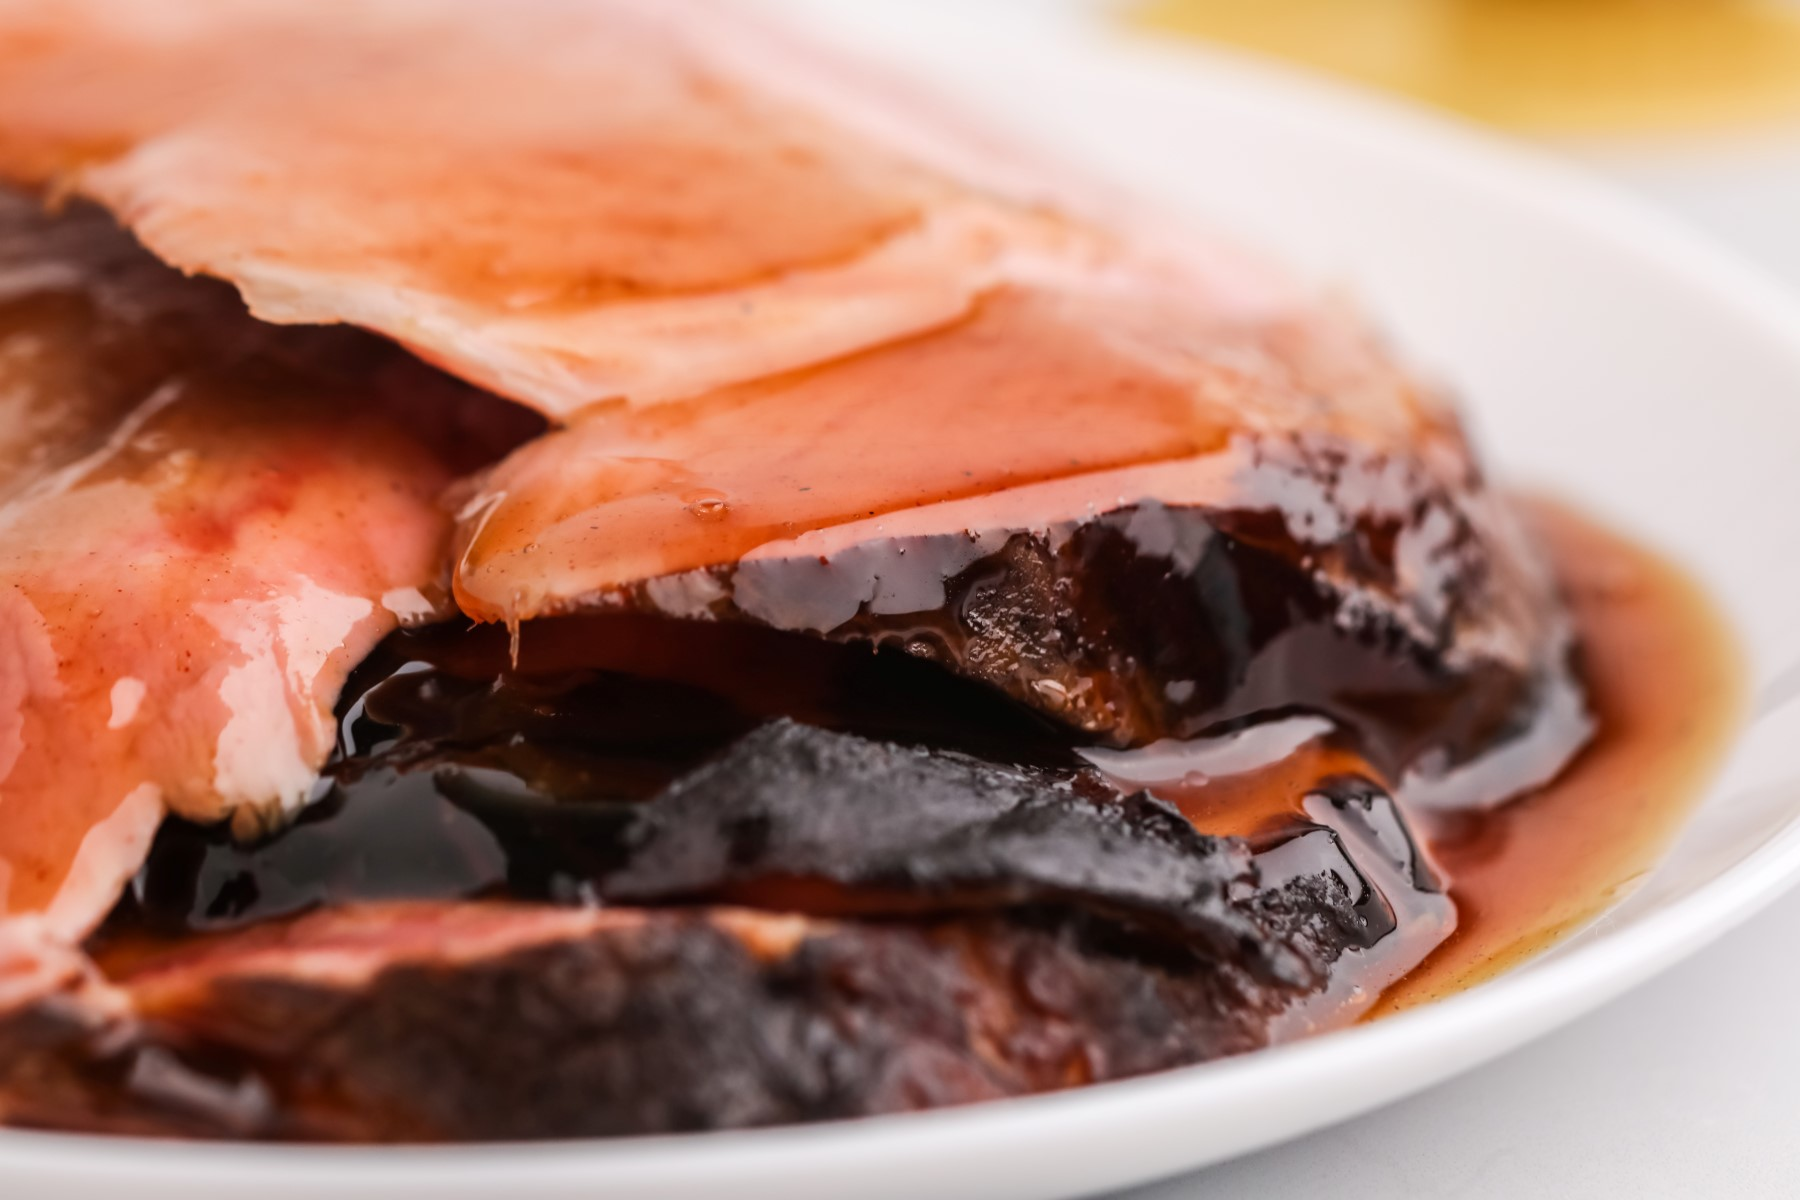 Slices of smoked ham on a white plate covered in the brown sugar honey sauce.